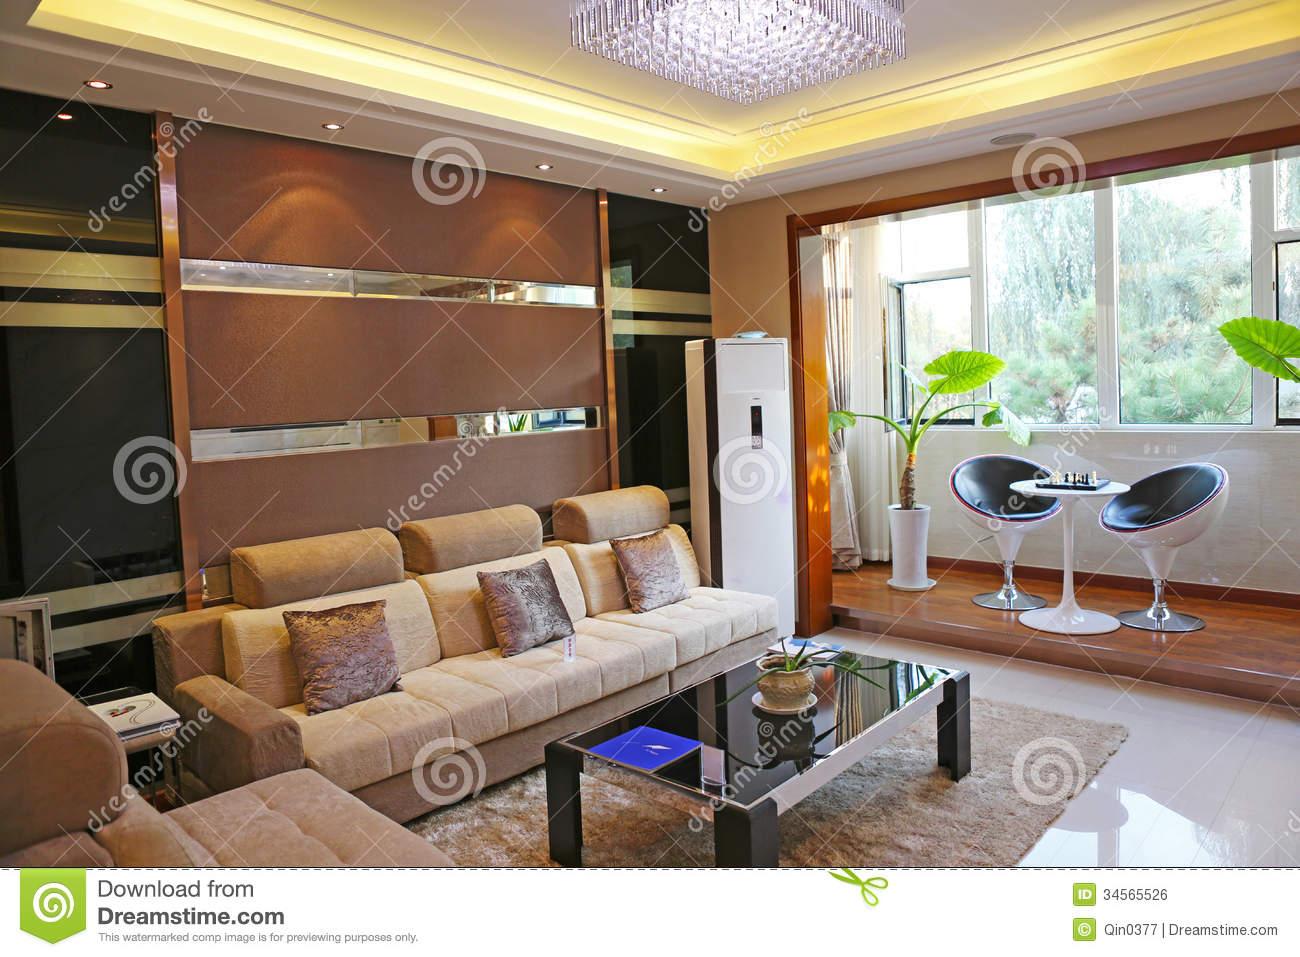 modern table for living room green paint family royalty free stock image - image: 34565526